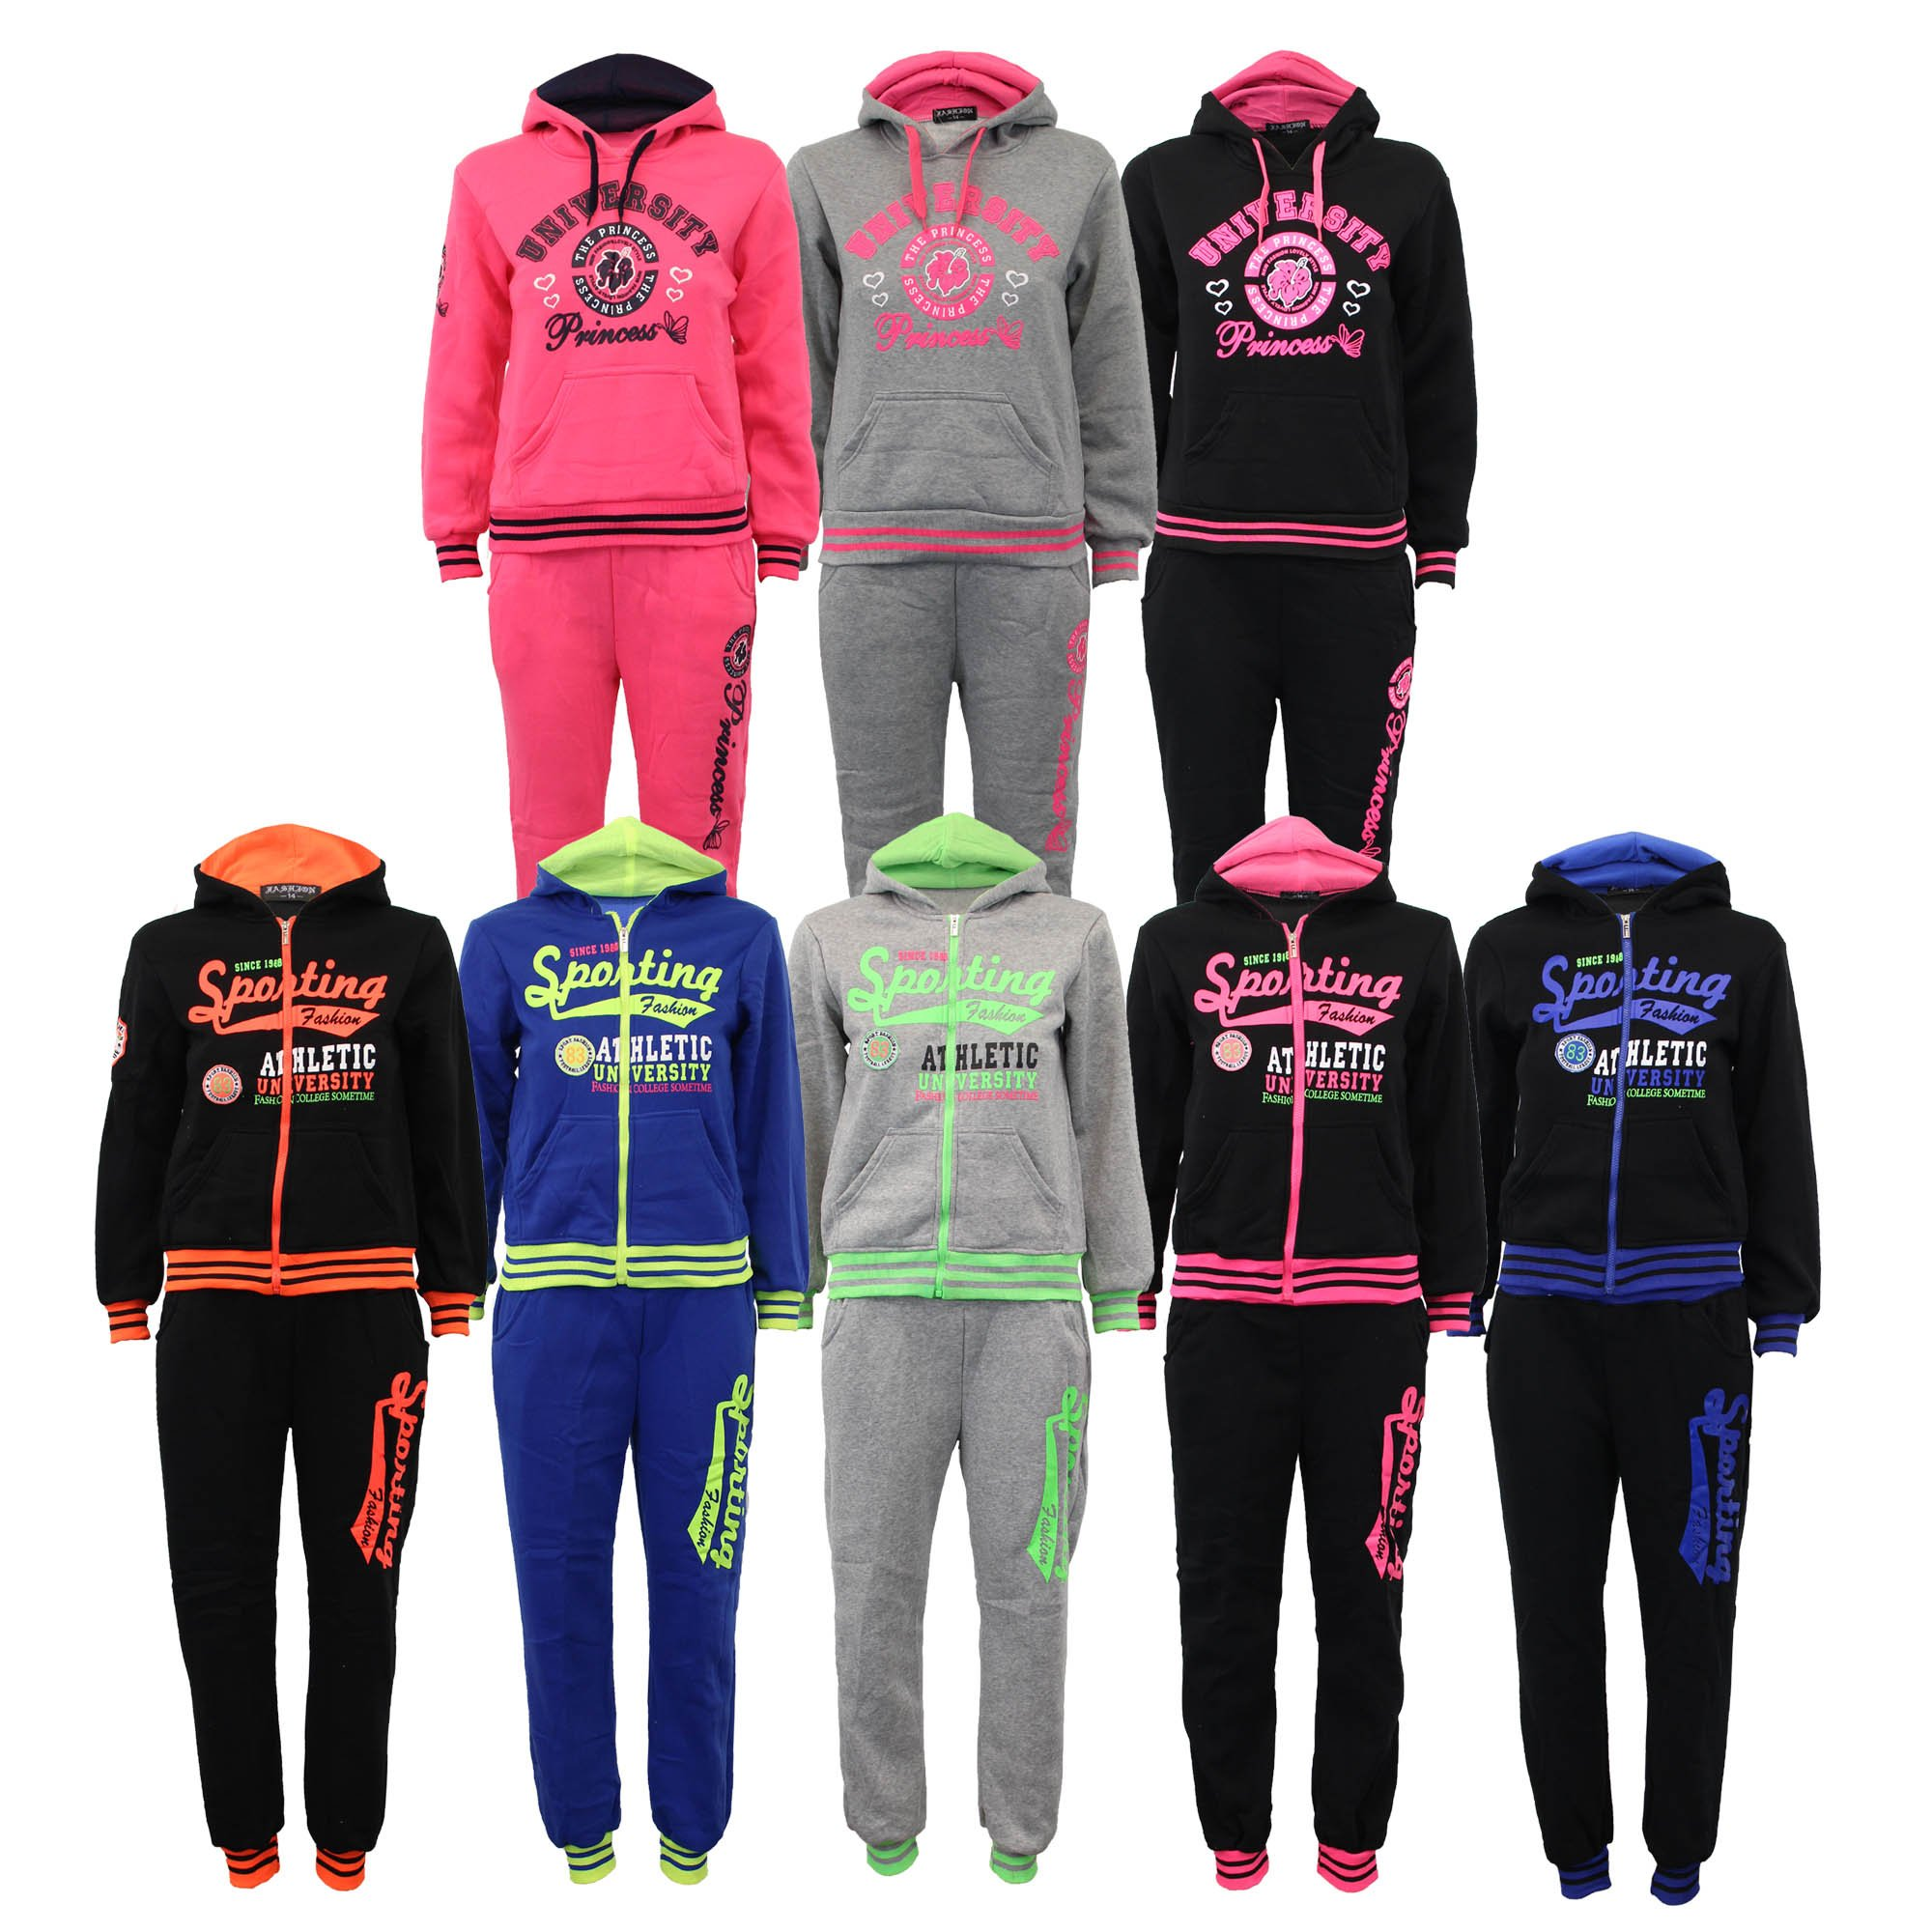 Boys' Tracksuit C73 Black/Fuchsia Size 14 10/11 Years by Unknown (Image #4)